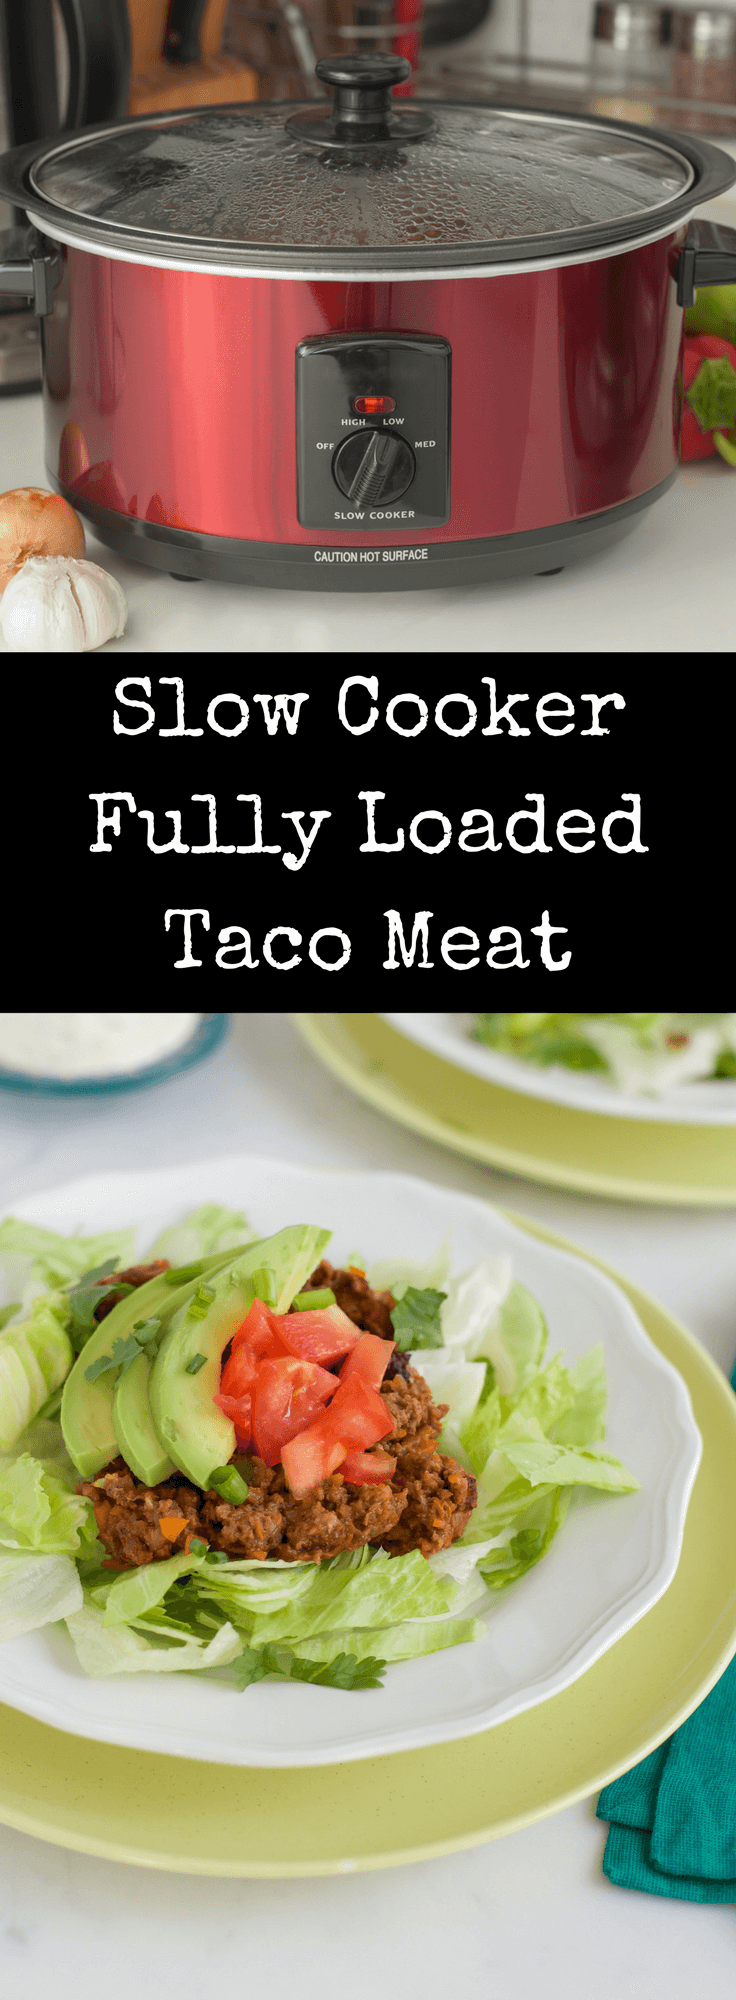 Make taco night a breeze with this tender and flavorful Slow Cooker Taco Meat recipe. Dump ground beef and simple spices in your slow cooker and dinner is done! This will become your families favorite taco!